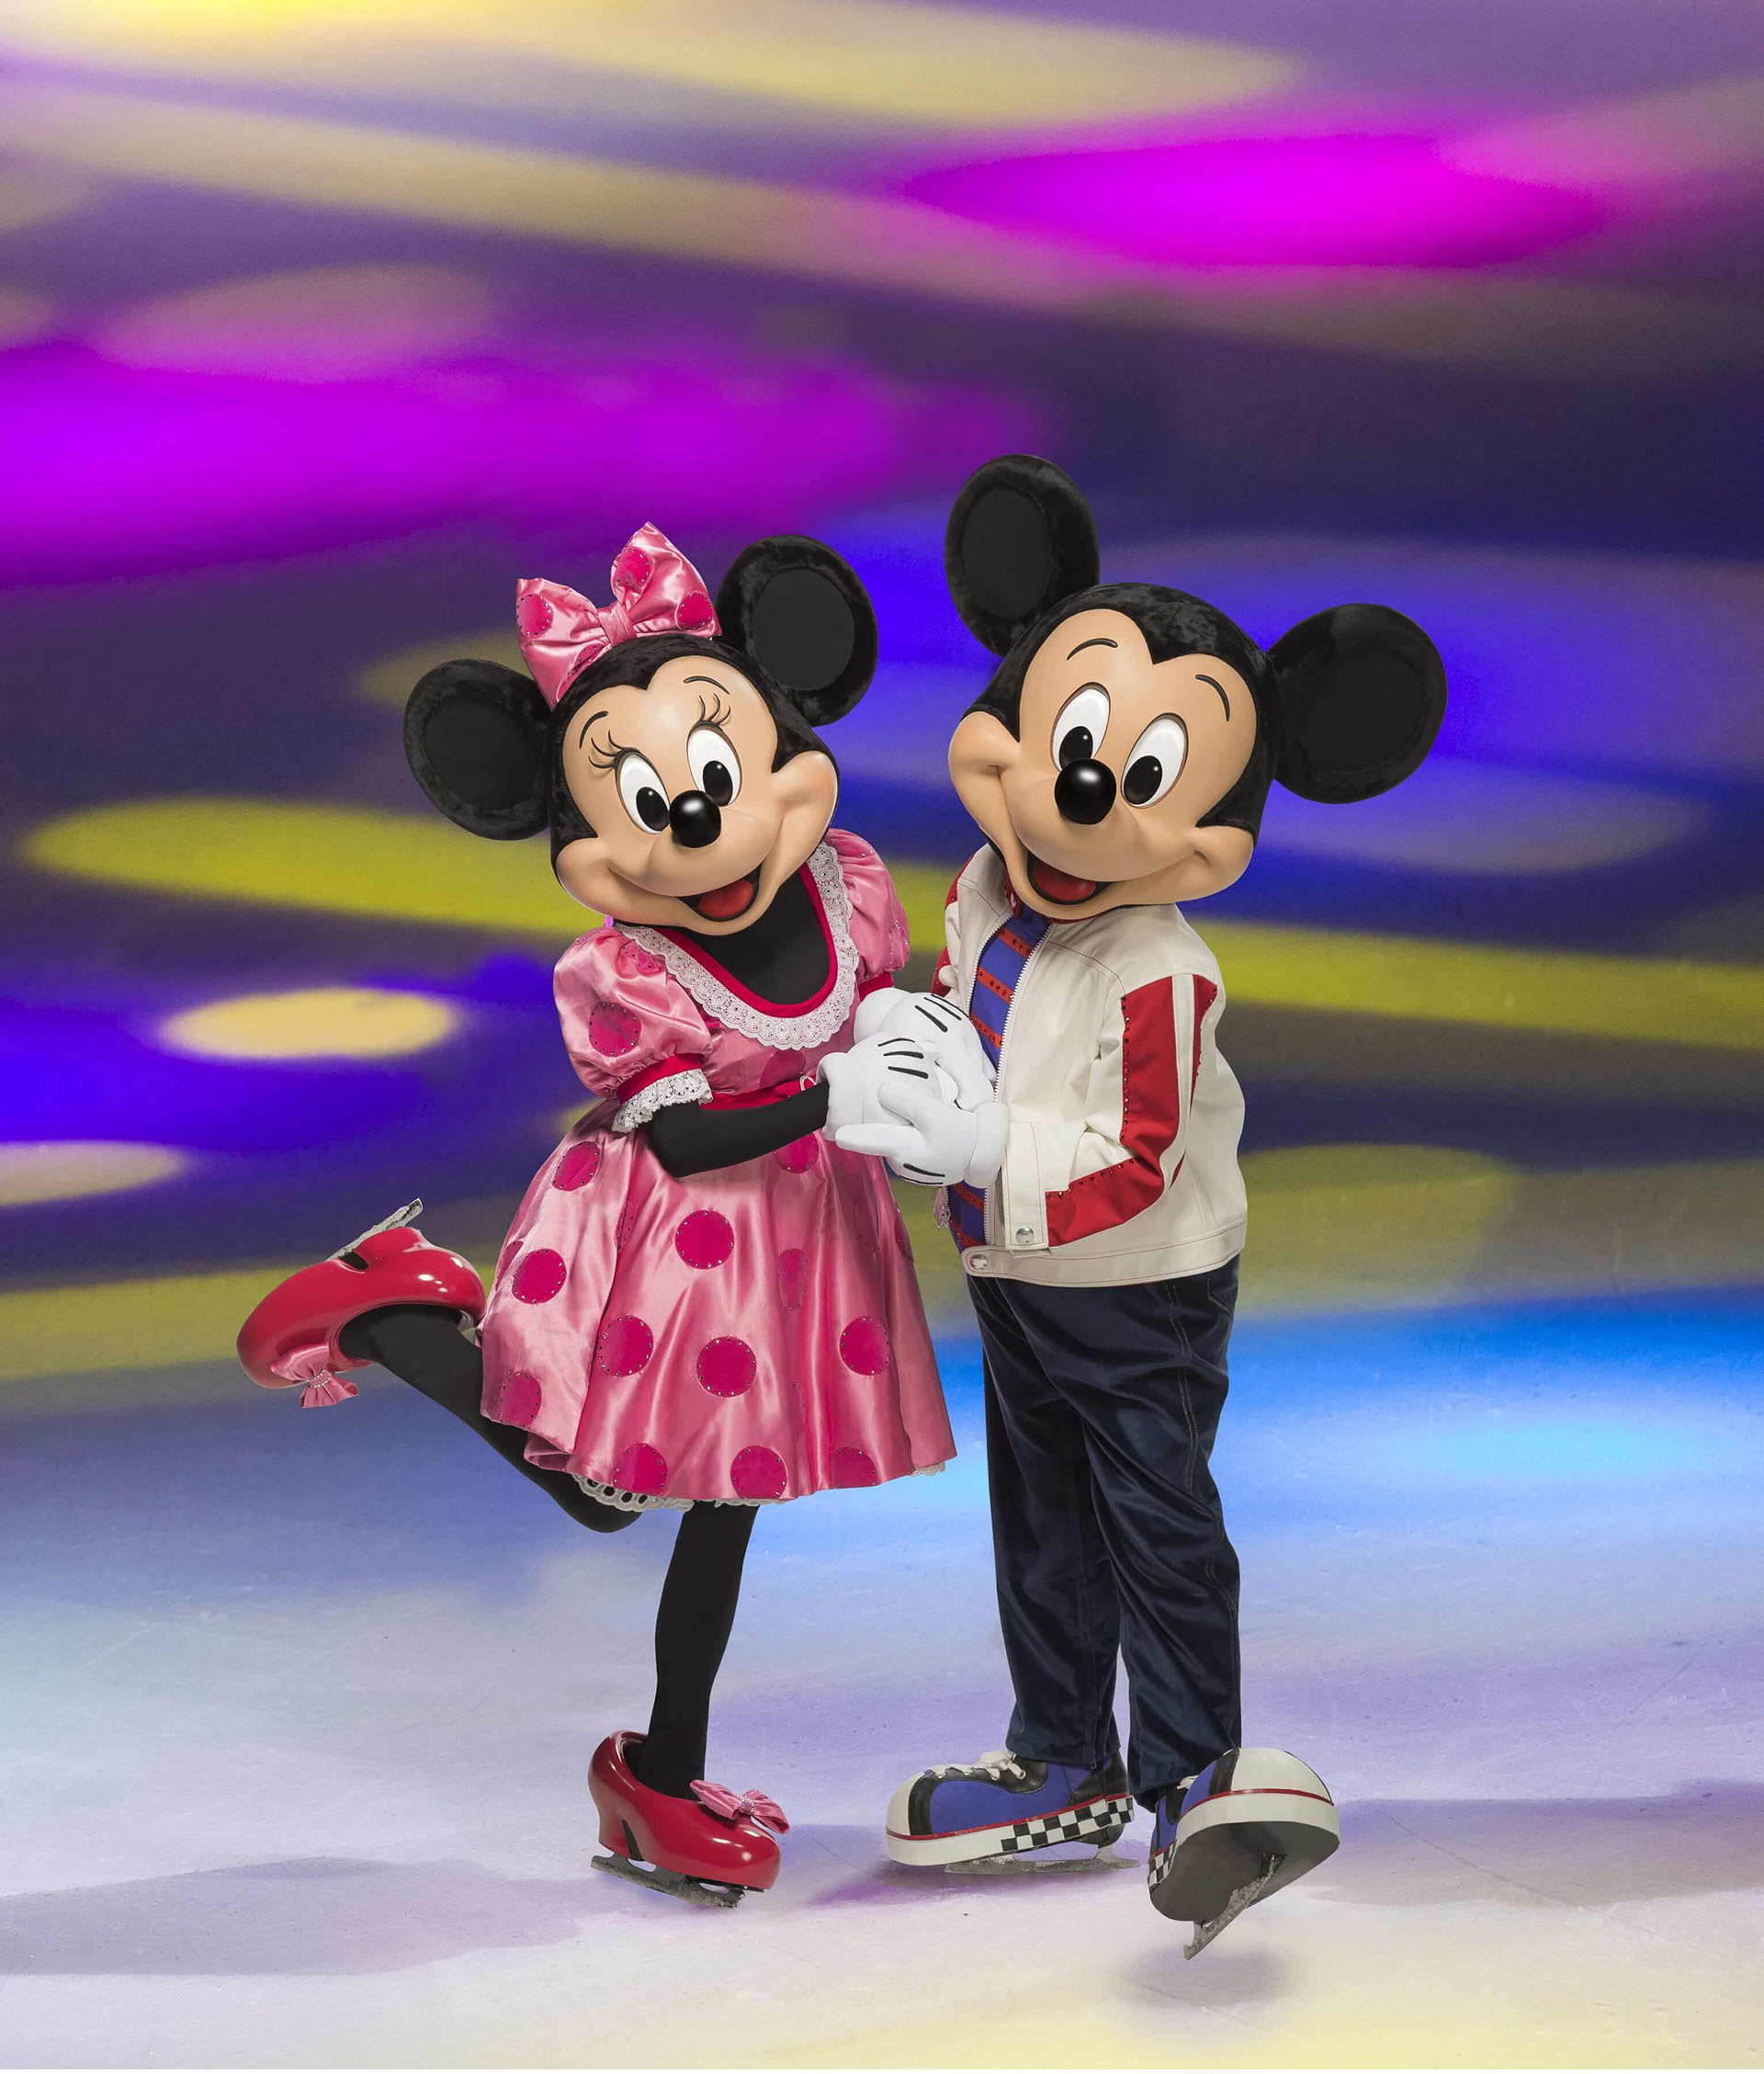 Minnie & Mickey Mouse on ice